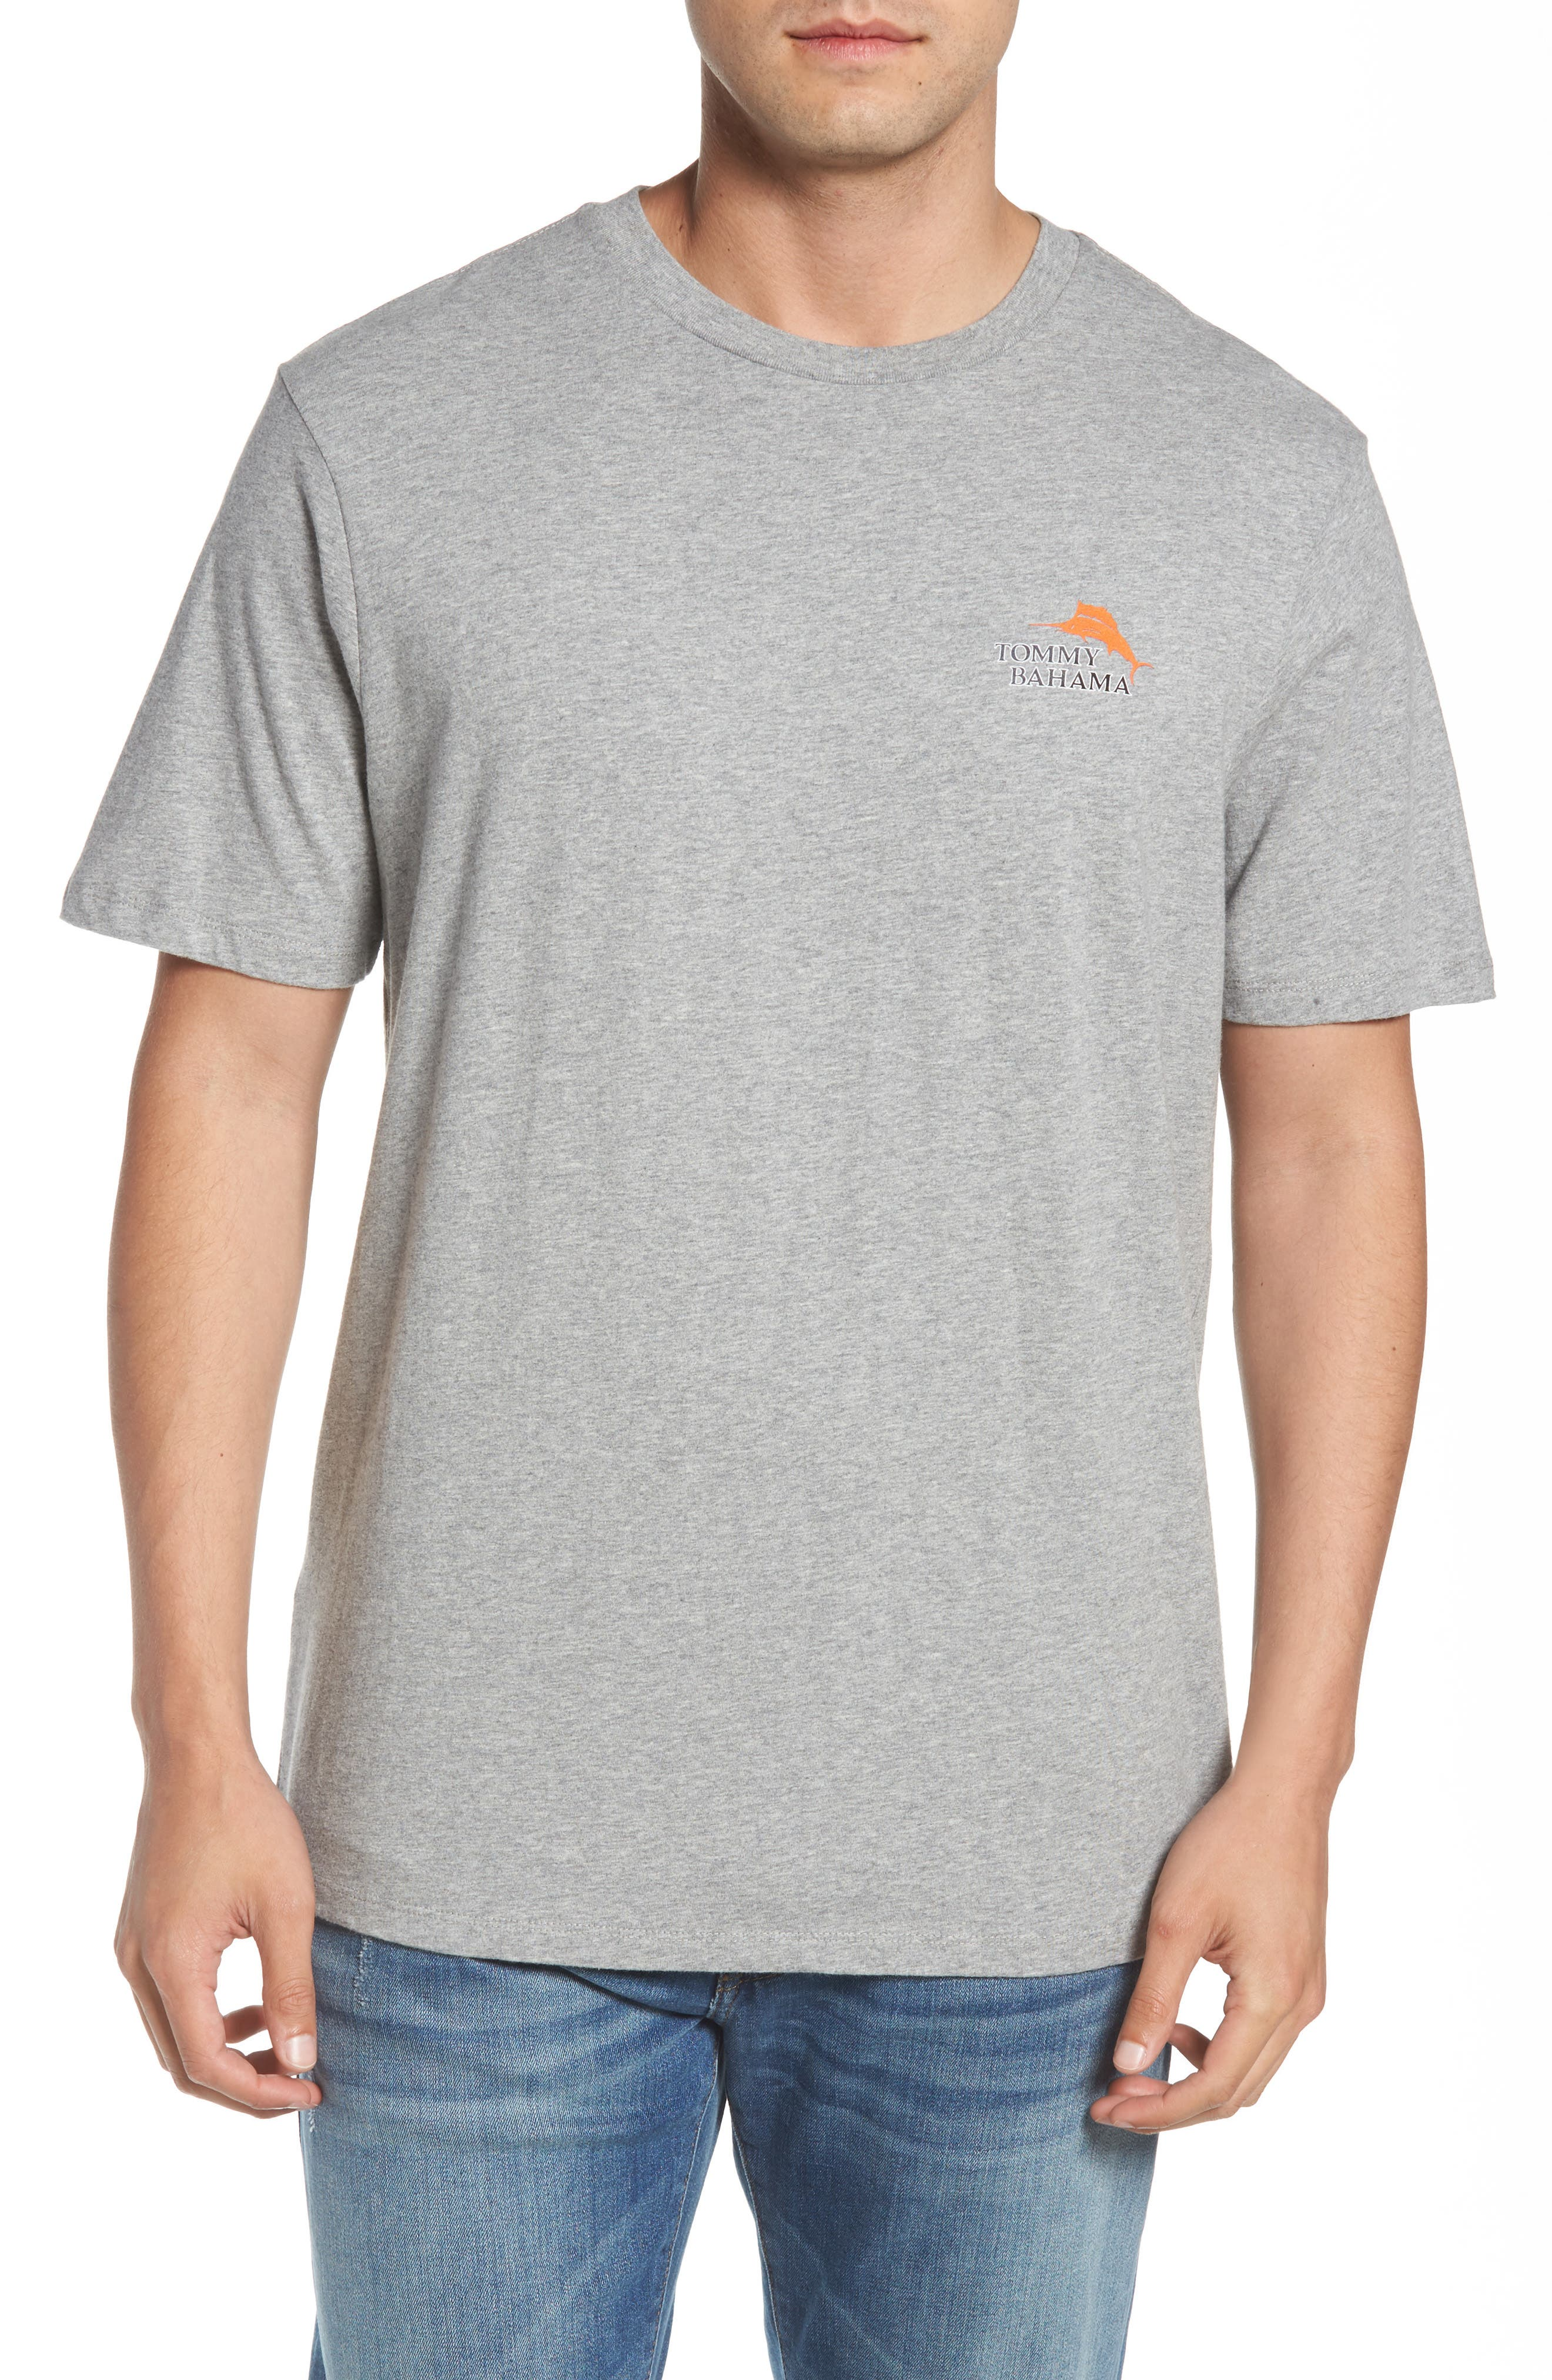 Head Count T-Shirt,                             Main thumbnail 1, color,                             Grey Heather